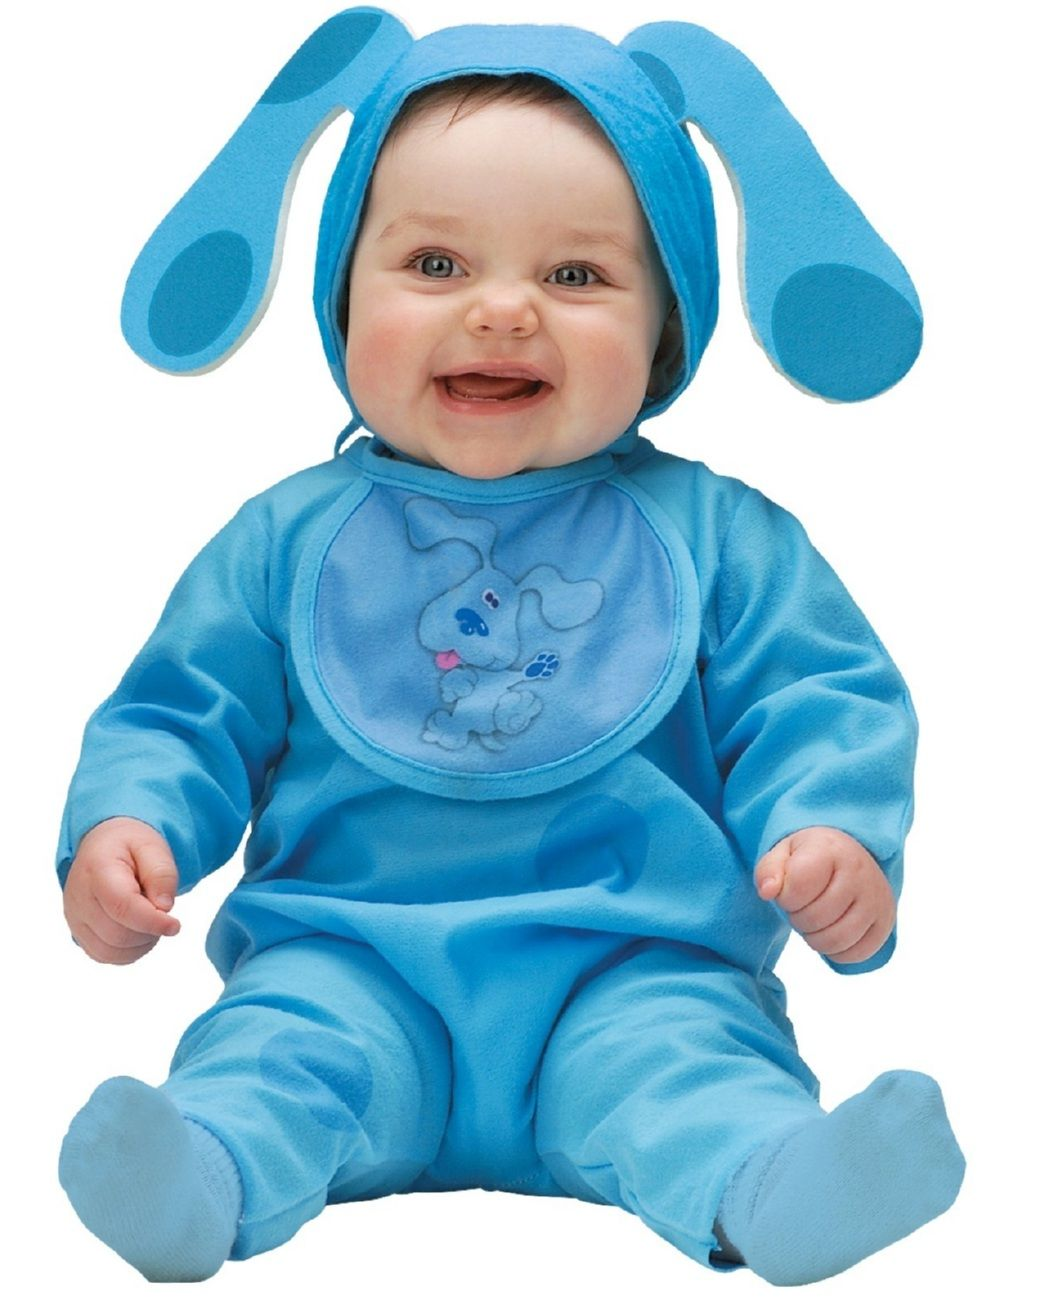 blues clues oh great sweet mother my child must wear this